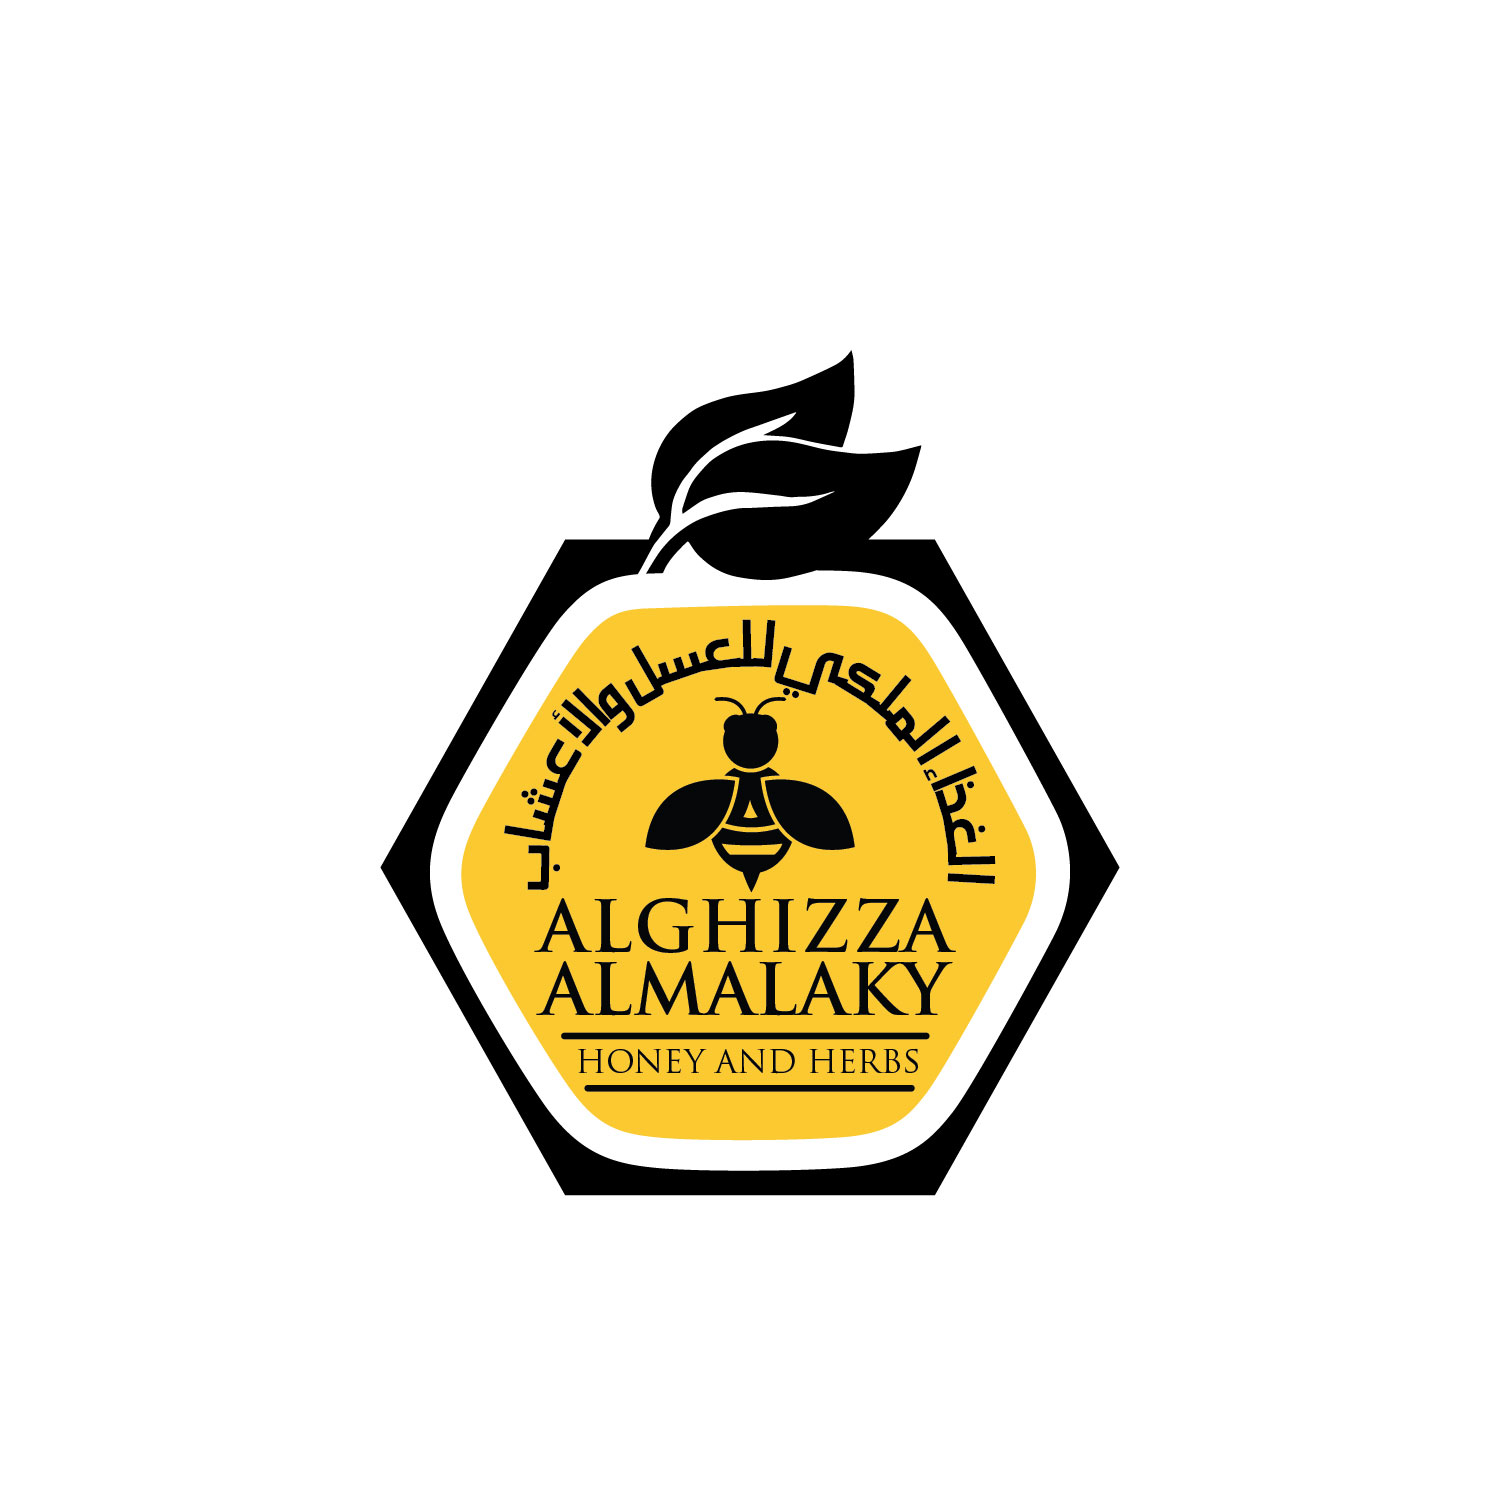 Logo Design by lagalag - Entry No. 55 in the Logo Design Contest Artistic Logo Design for ALGHIZZA ALMALAKY HONEY AND HERBS.